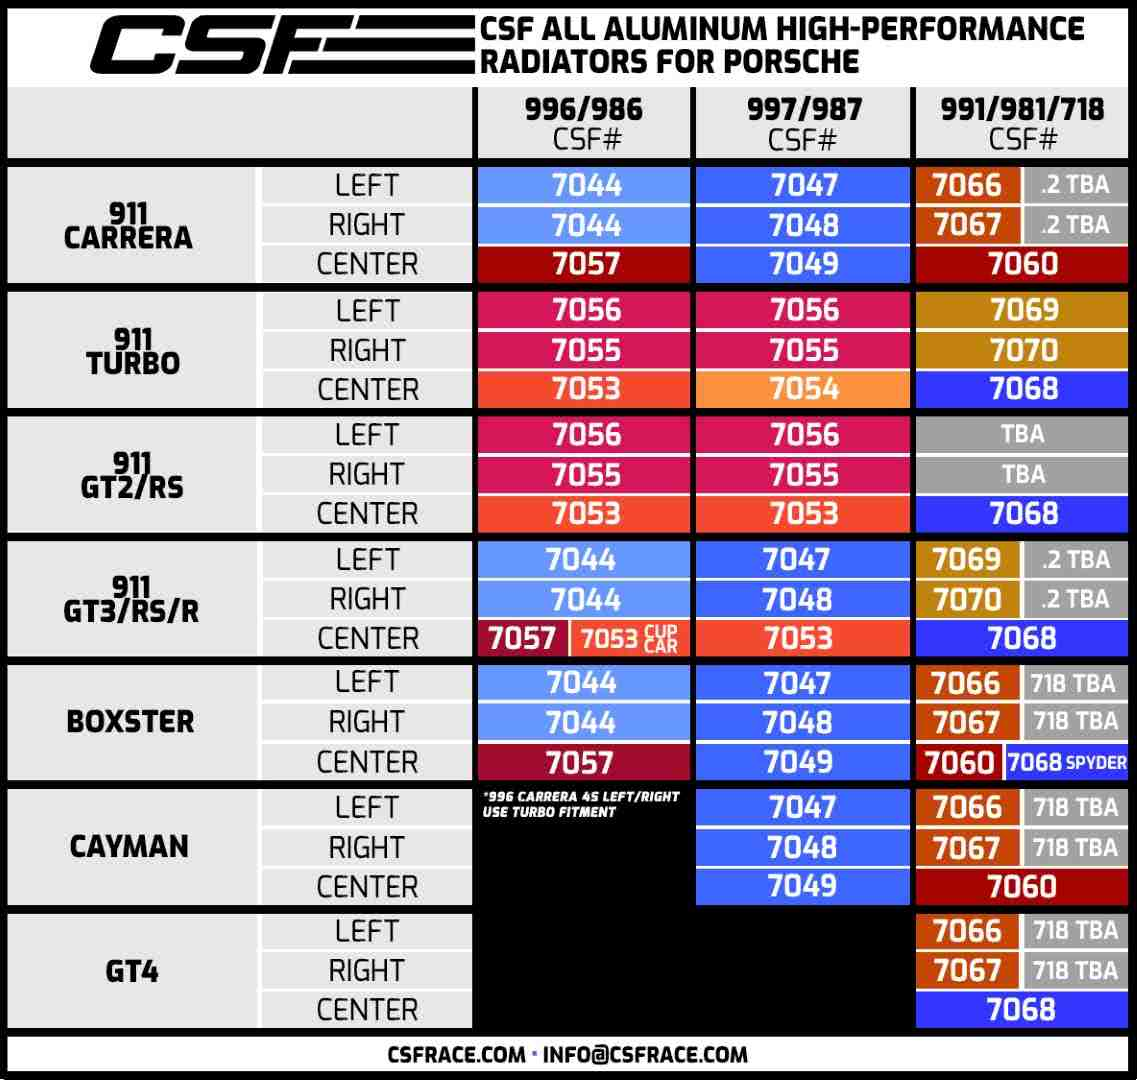 CSF Radiator Reference Chart for Porsche 911, Boxster, and Cayman Models including 986/987/987.2/981/718 and 996/997/997.2